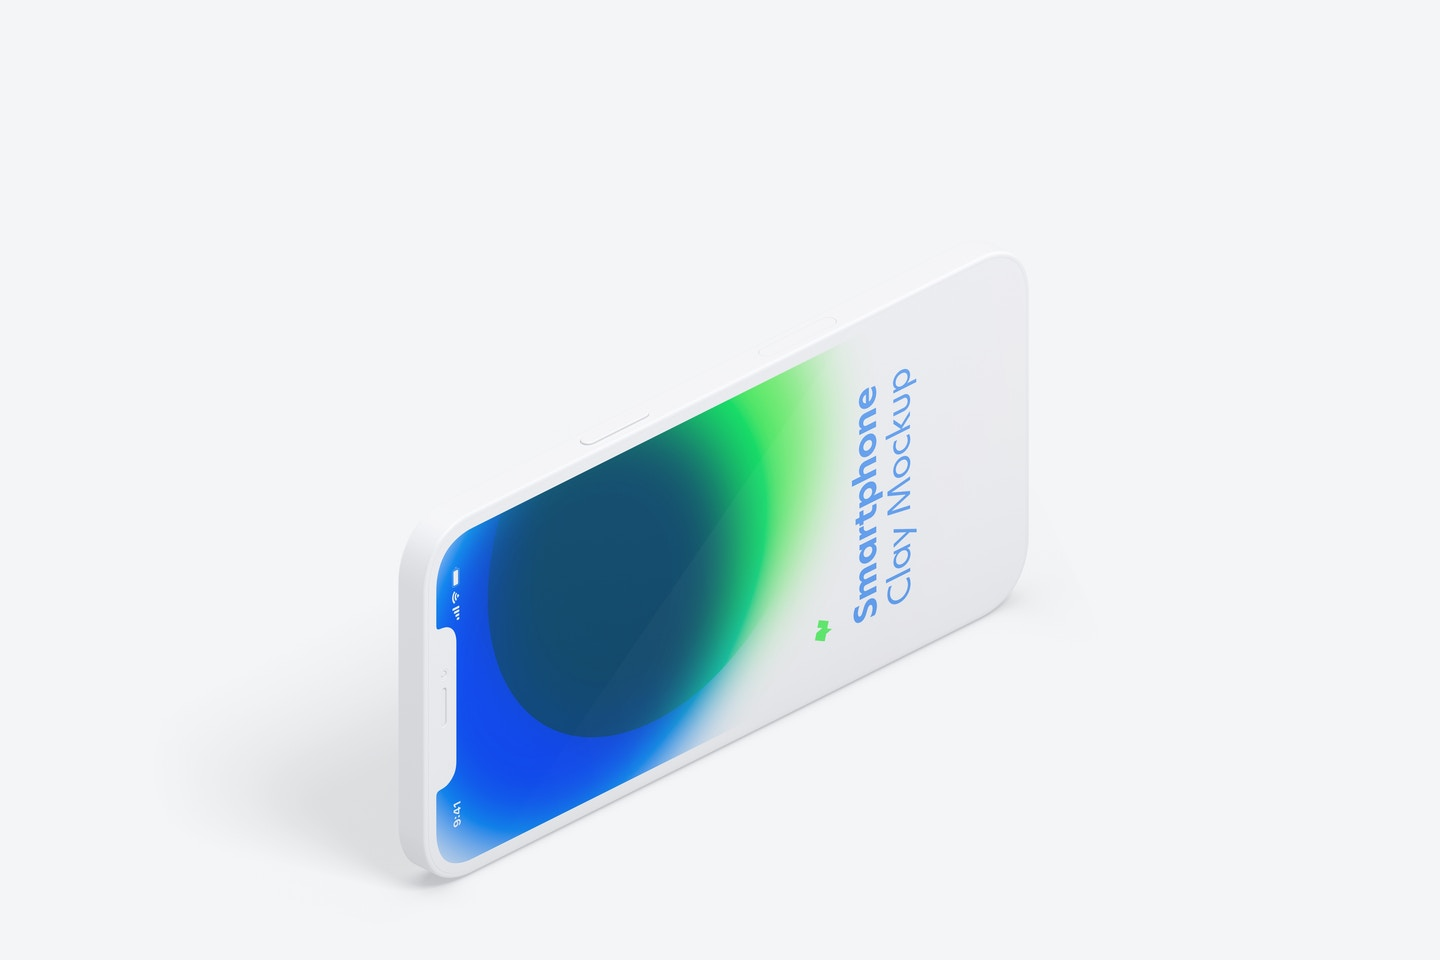 Isometric Clay iPhone 12 Mockup, Landscape Left View